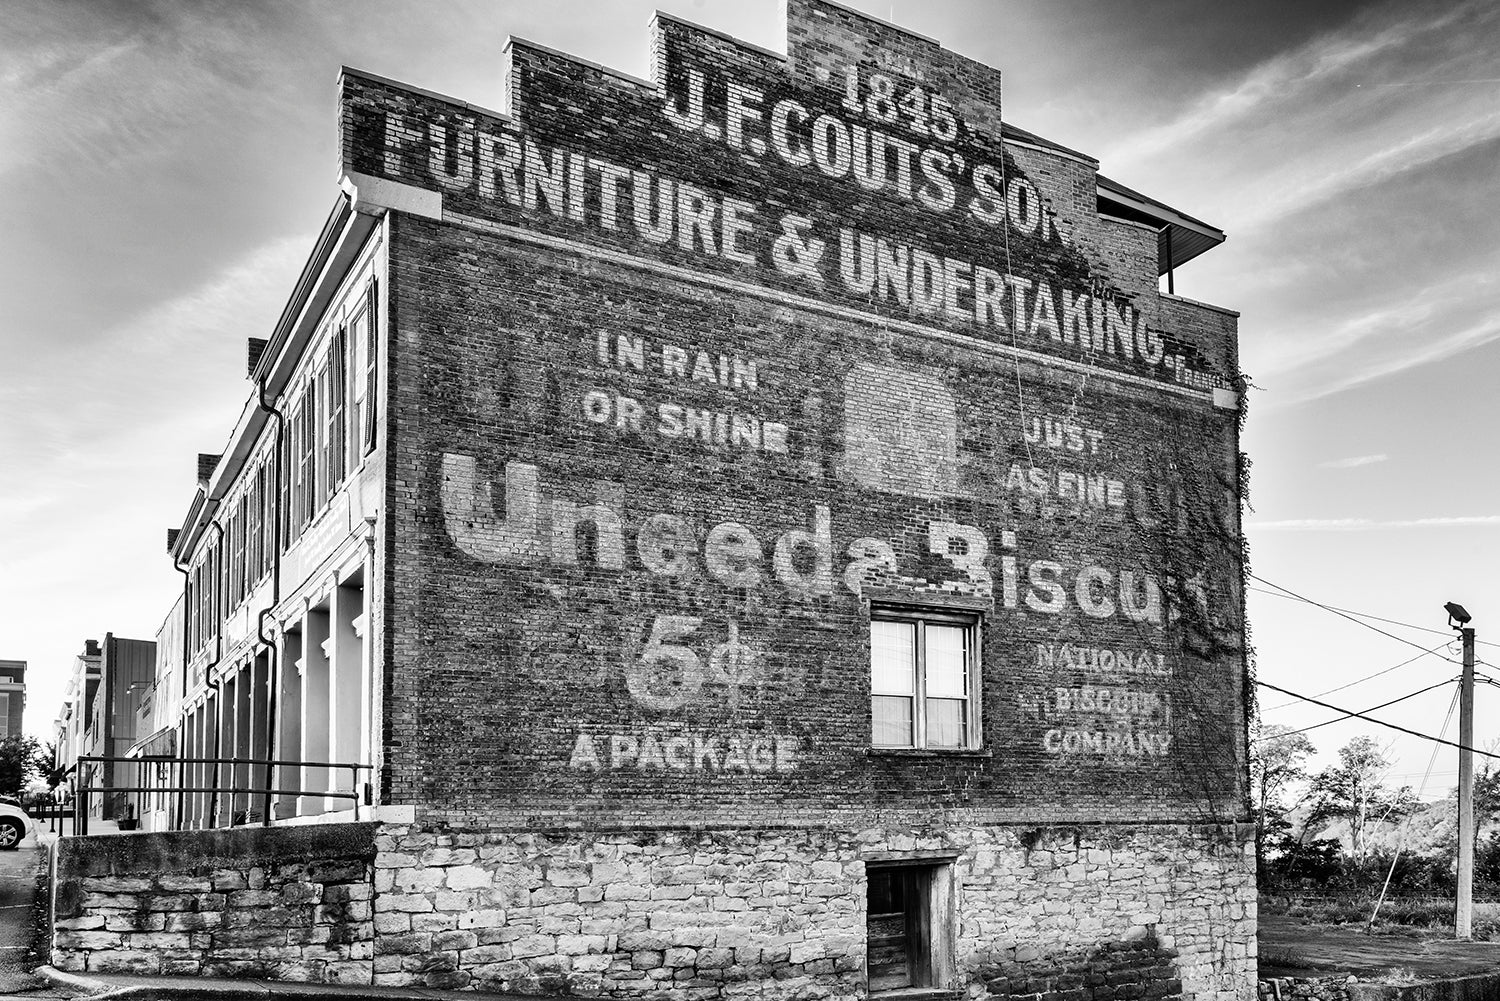 Uneeda Biscuit Ghost Sign in Clarksville Tennessee - Black and White Photograph by Keith Dotson. Click to buy a fine art print.